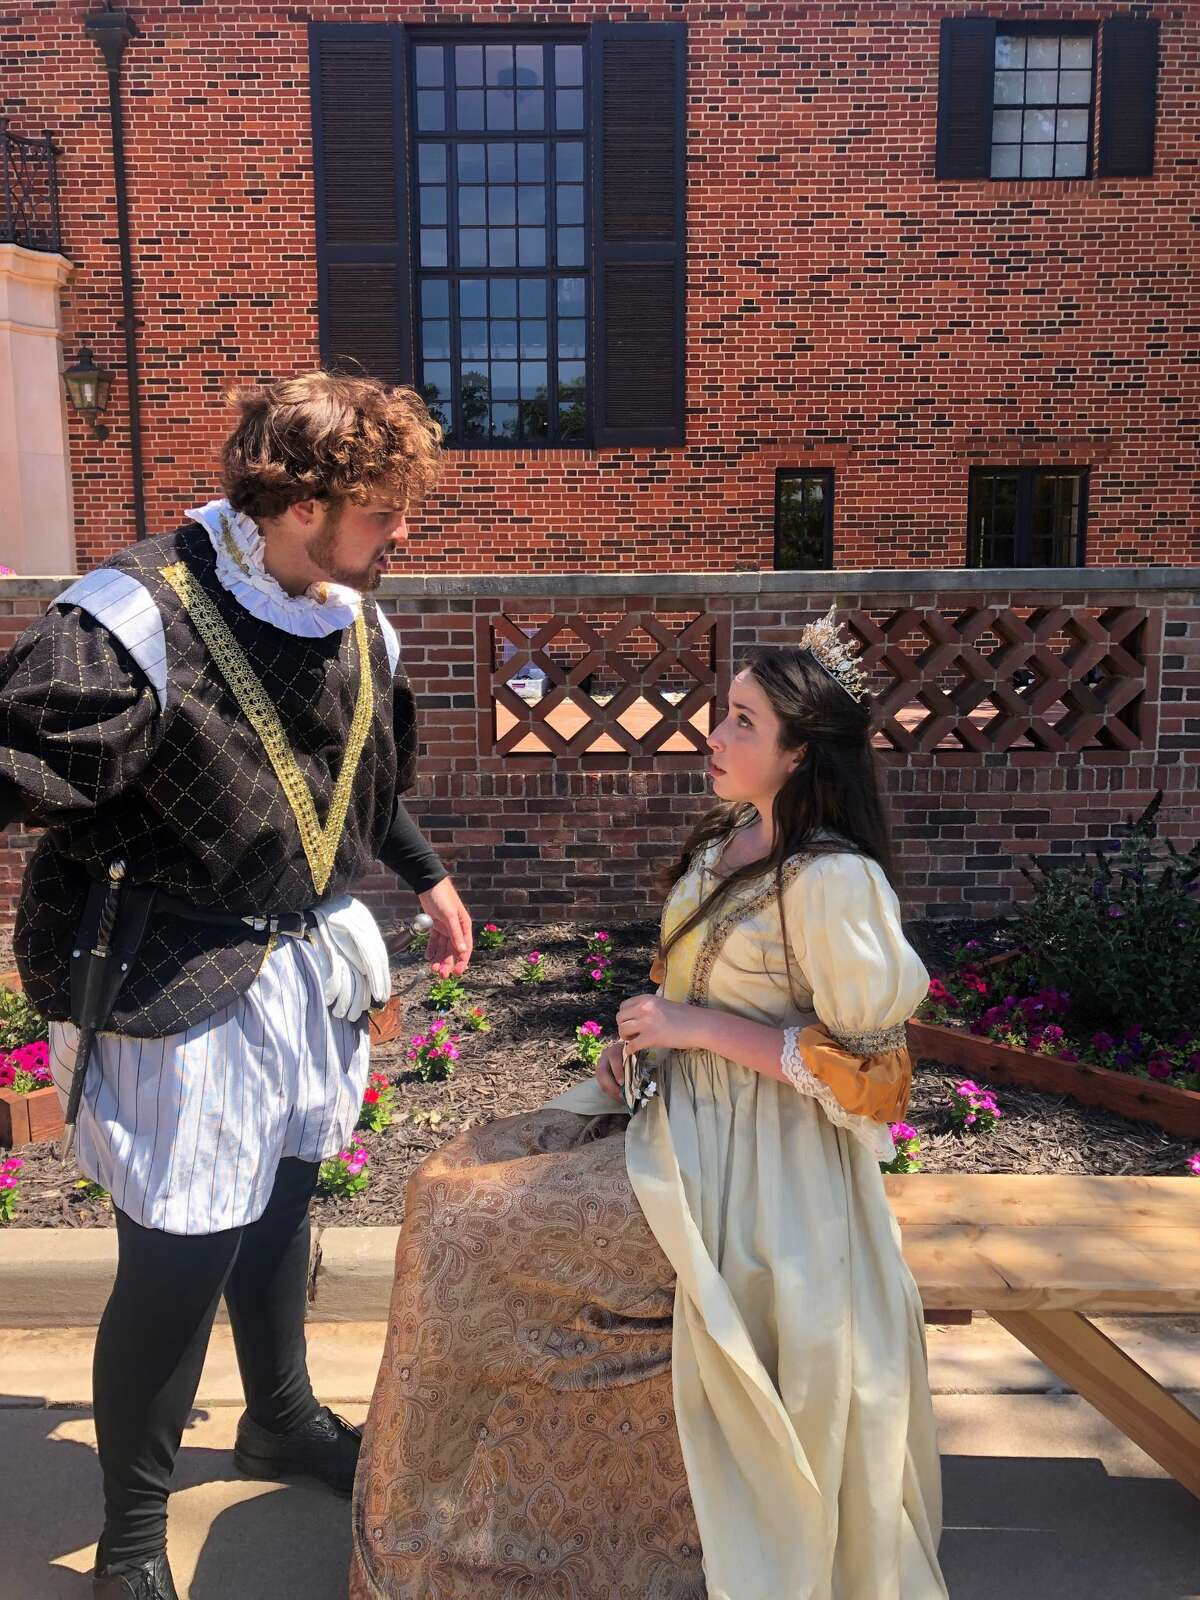 Midland Classic Theatre Group is partnering with the Museum of the Southwest, Arts Council of Midland, Centennial Plaza, & Celebration of the Arts to provide a Shakespeare in the Park experience to Midland.